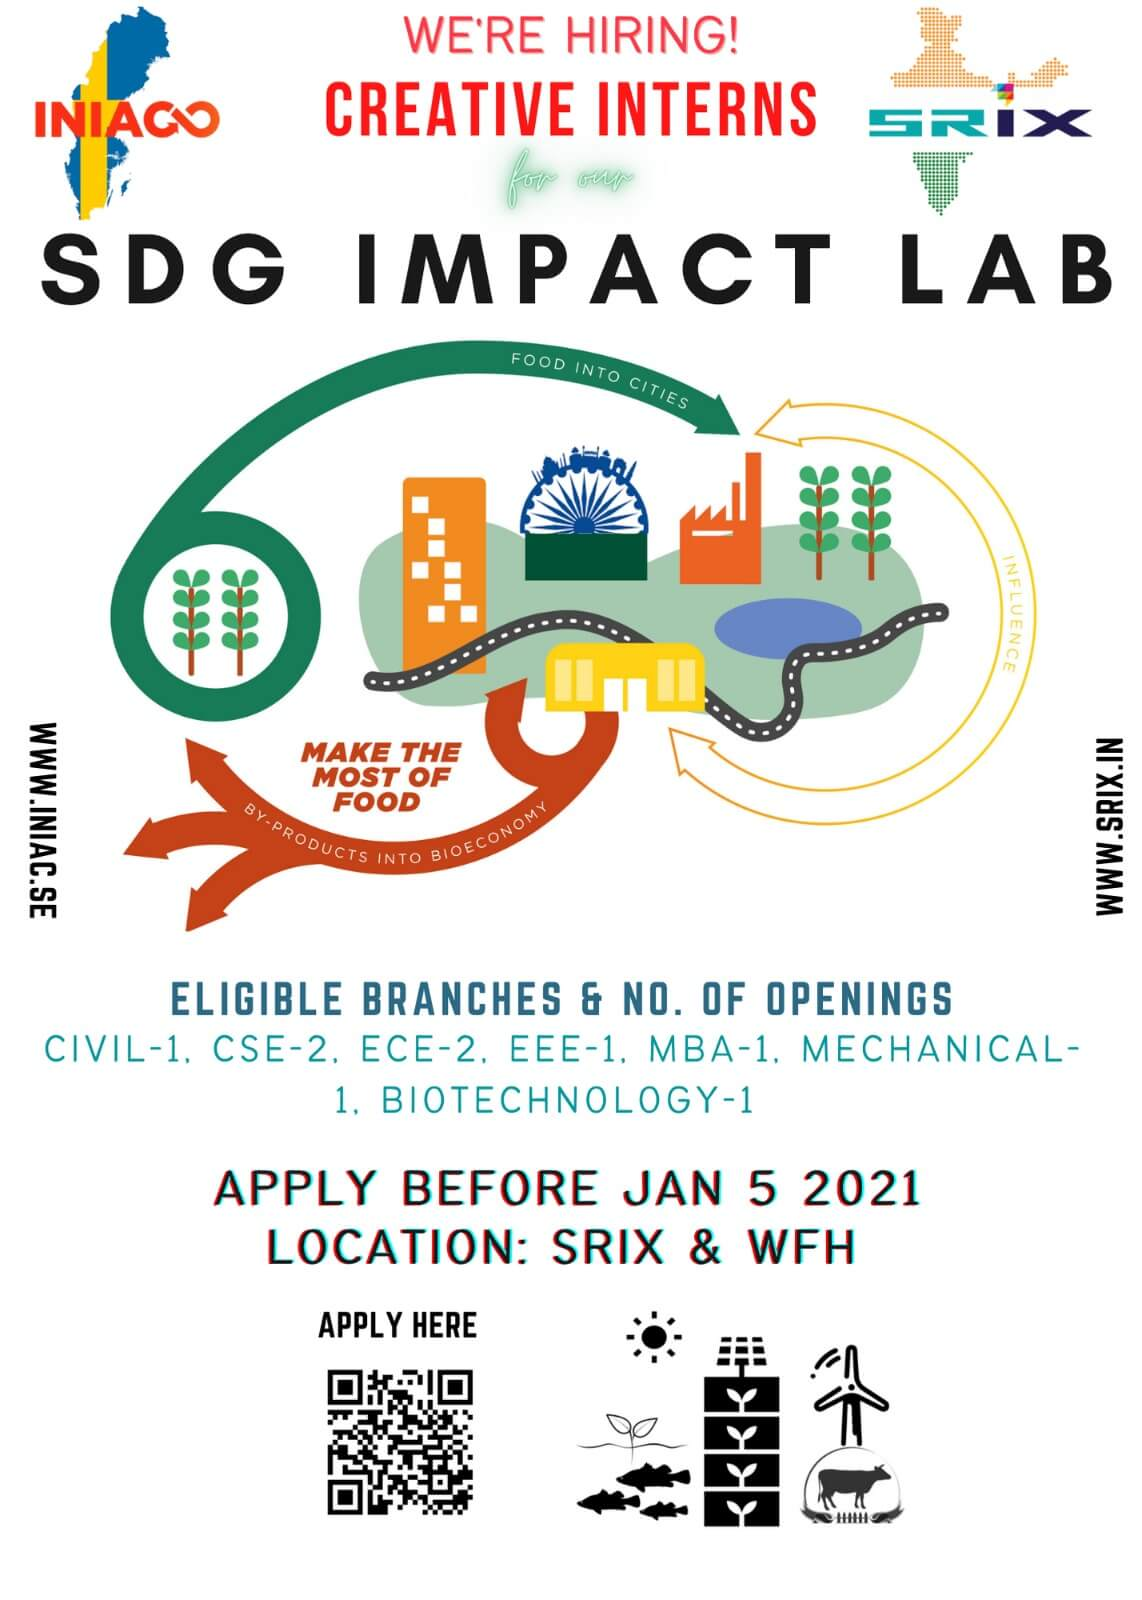 Internship Opportunity (Creative) at SDG Impact Lab, Warangal [10 Positions, 6 Months, Stipend Worth Rs. 4.5k]: Apply by Jan 5, 2021: Expired